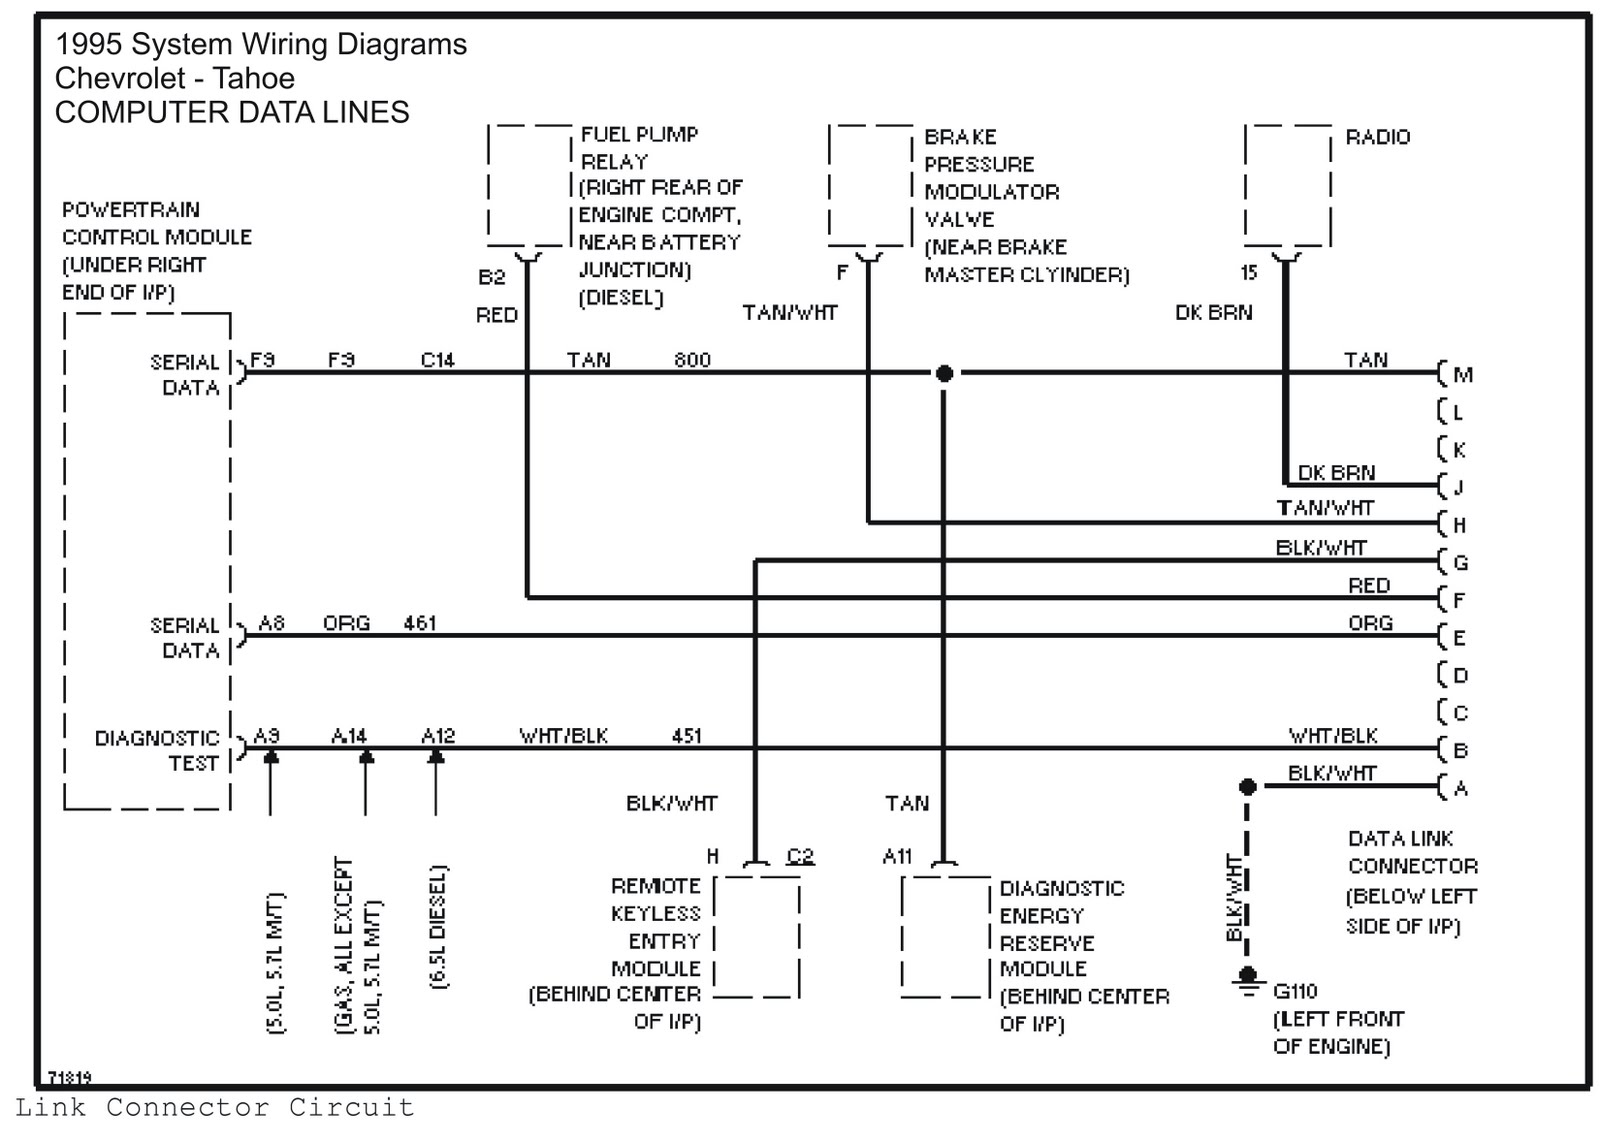 1997 tahoe 4l60e wiring diagram 1995 system wiring diagrams chevrolet tahoe computer data ...